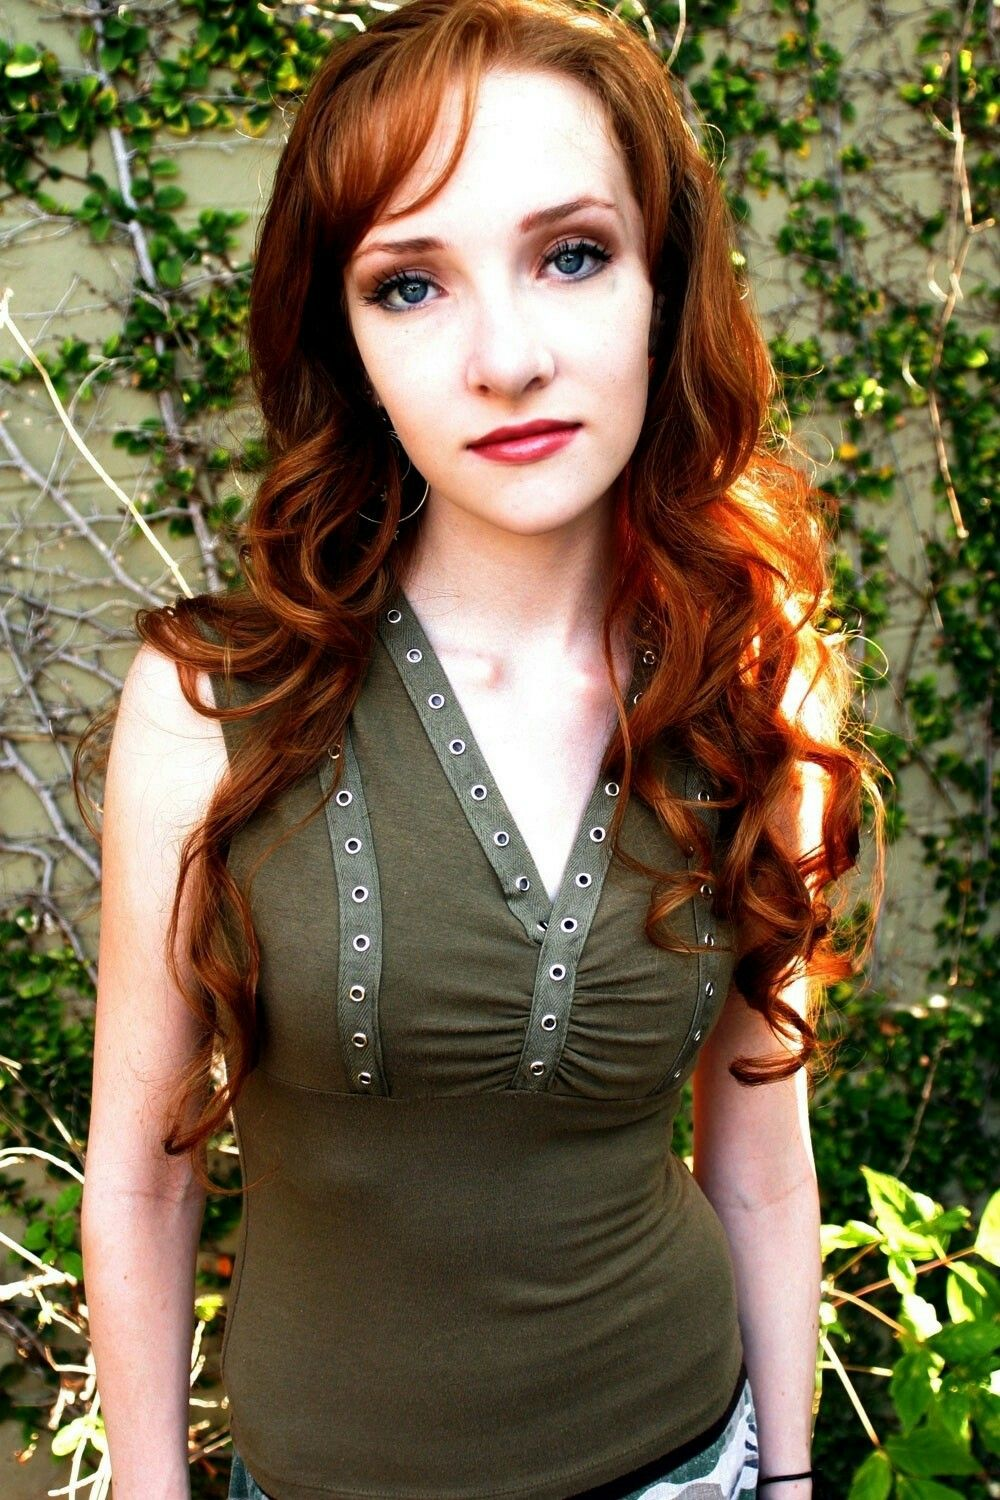 a biography of scarlett pomers an american actress and songwriter Scarlett pomers is an american actress, singer, and songwriter check out this biography to know about her childhood, family life, achievements and fun facts about her.